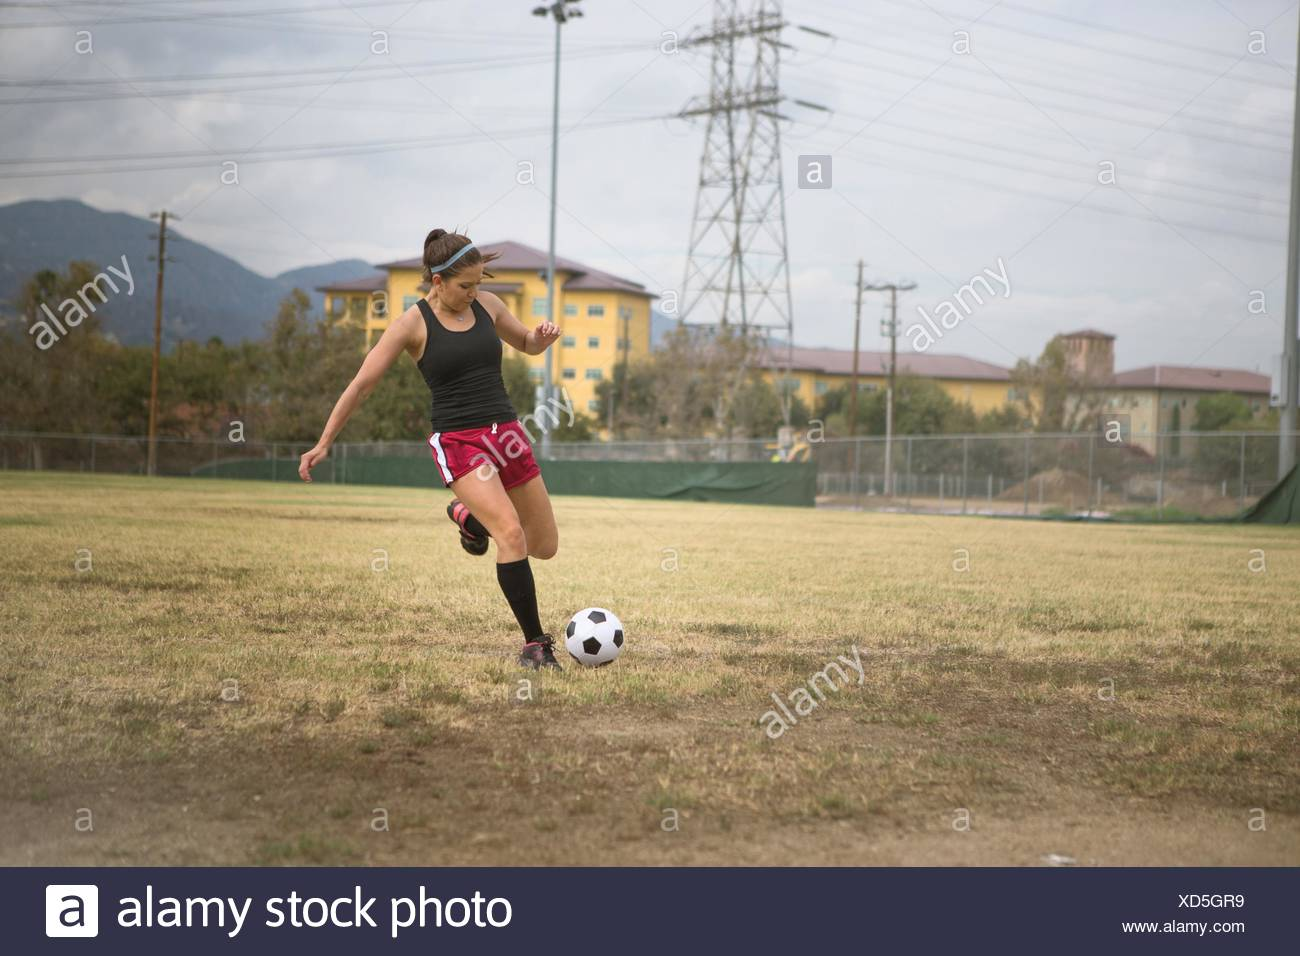 Soccer player practising in field - Stock Image